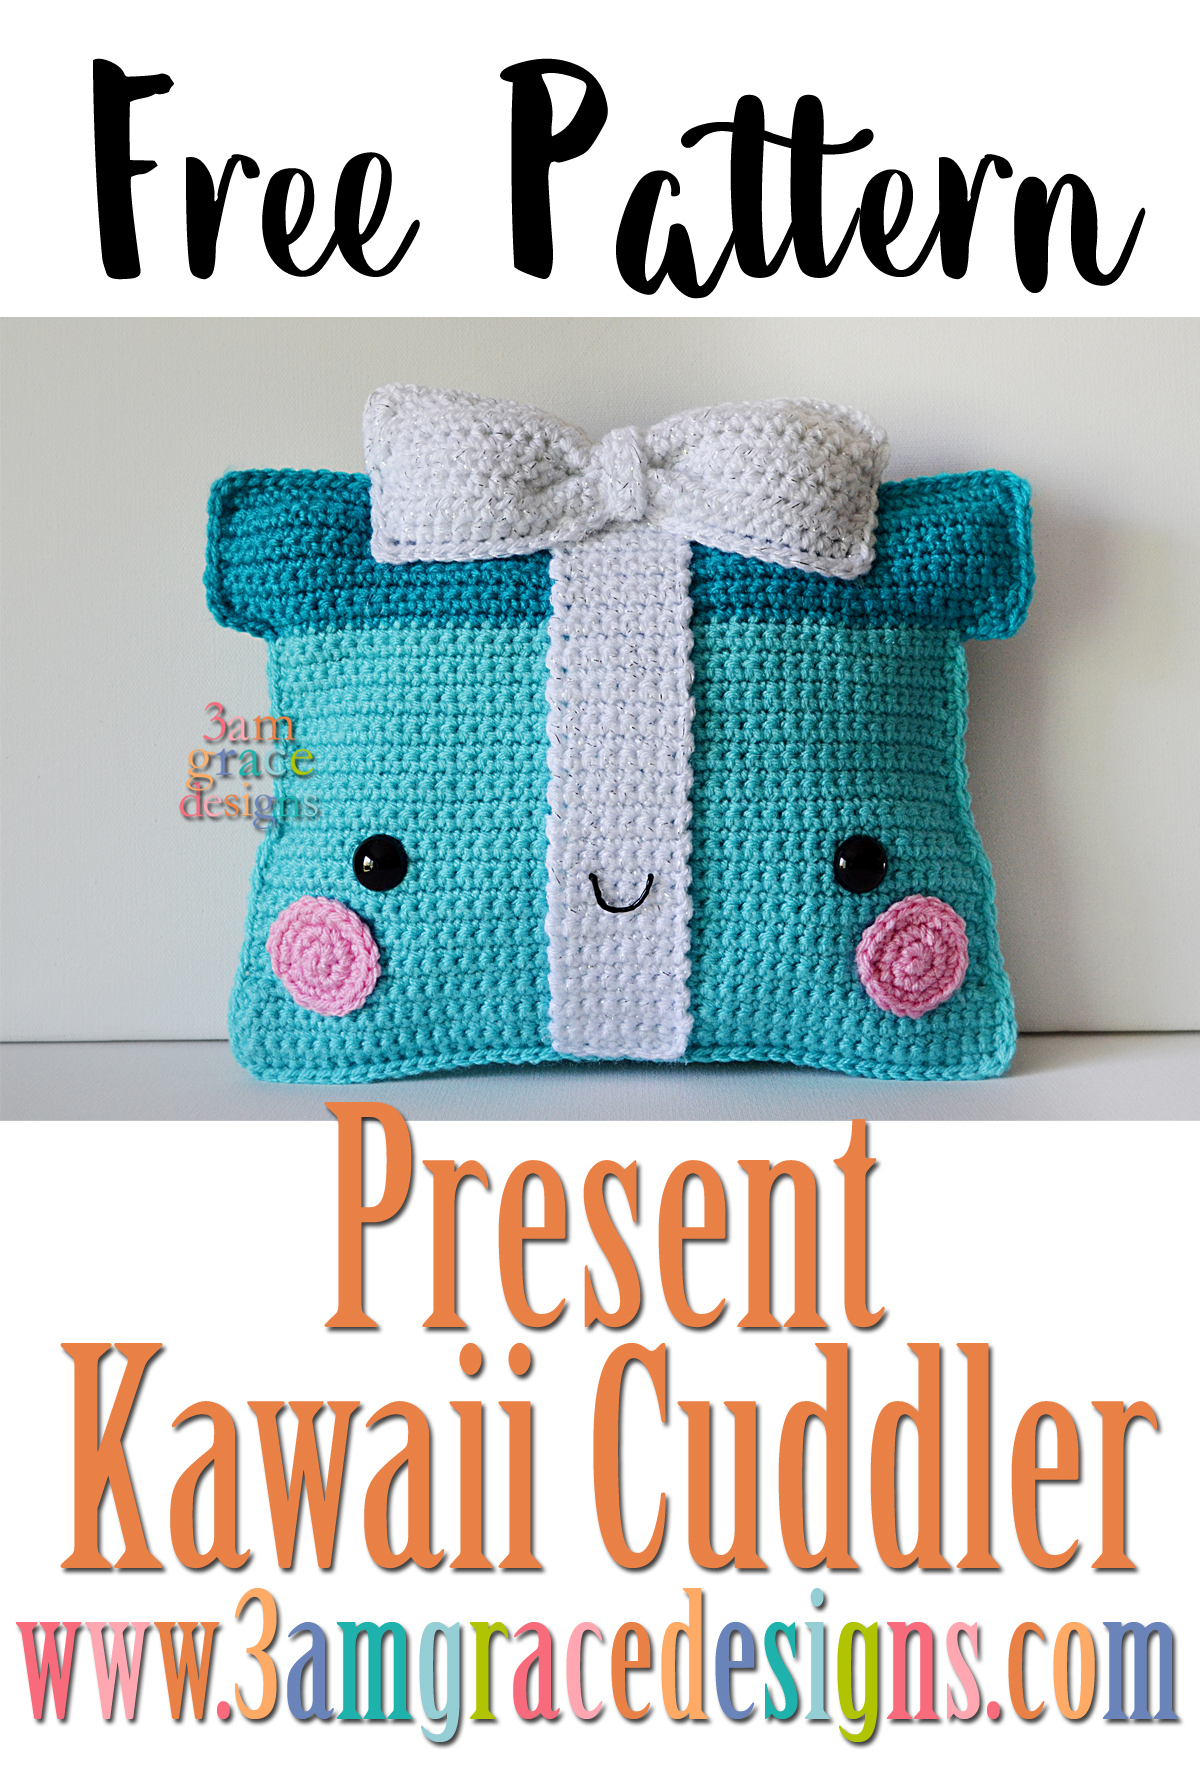 Our free Christmas Present crochet pattern is a great gift the the crocheter in your life. The amigurumi pillow is easy to make this holiday season!